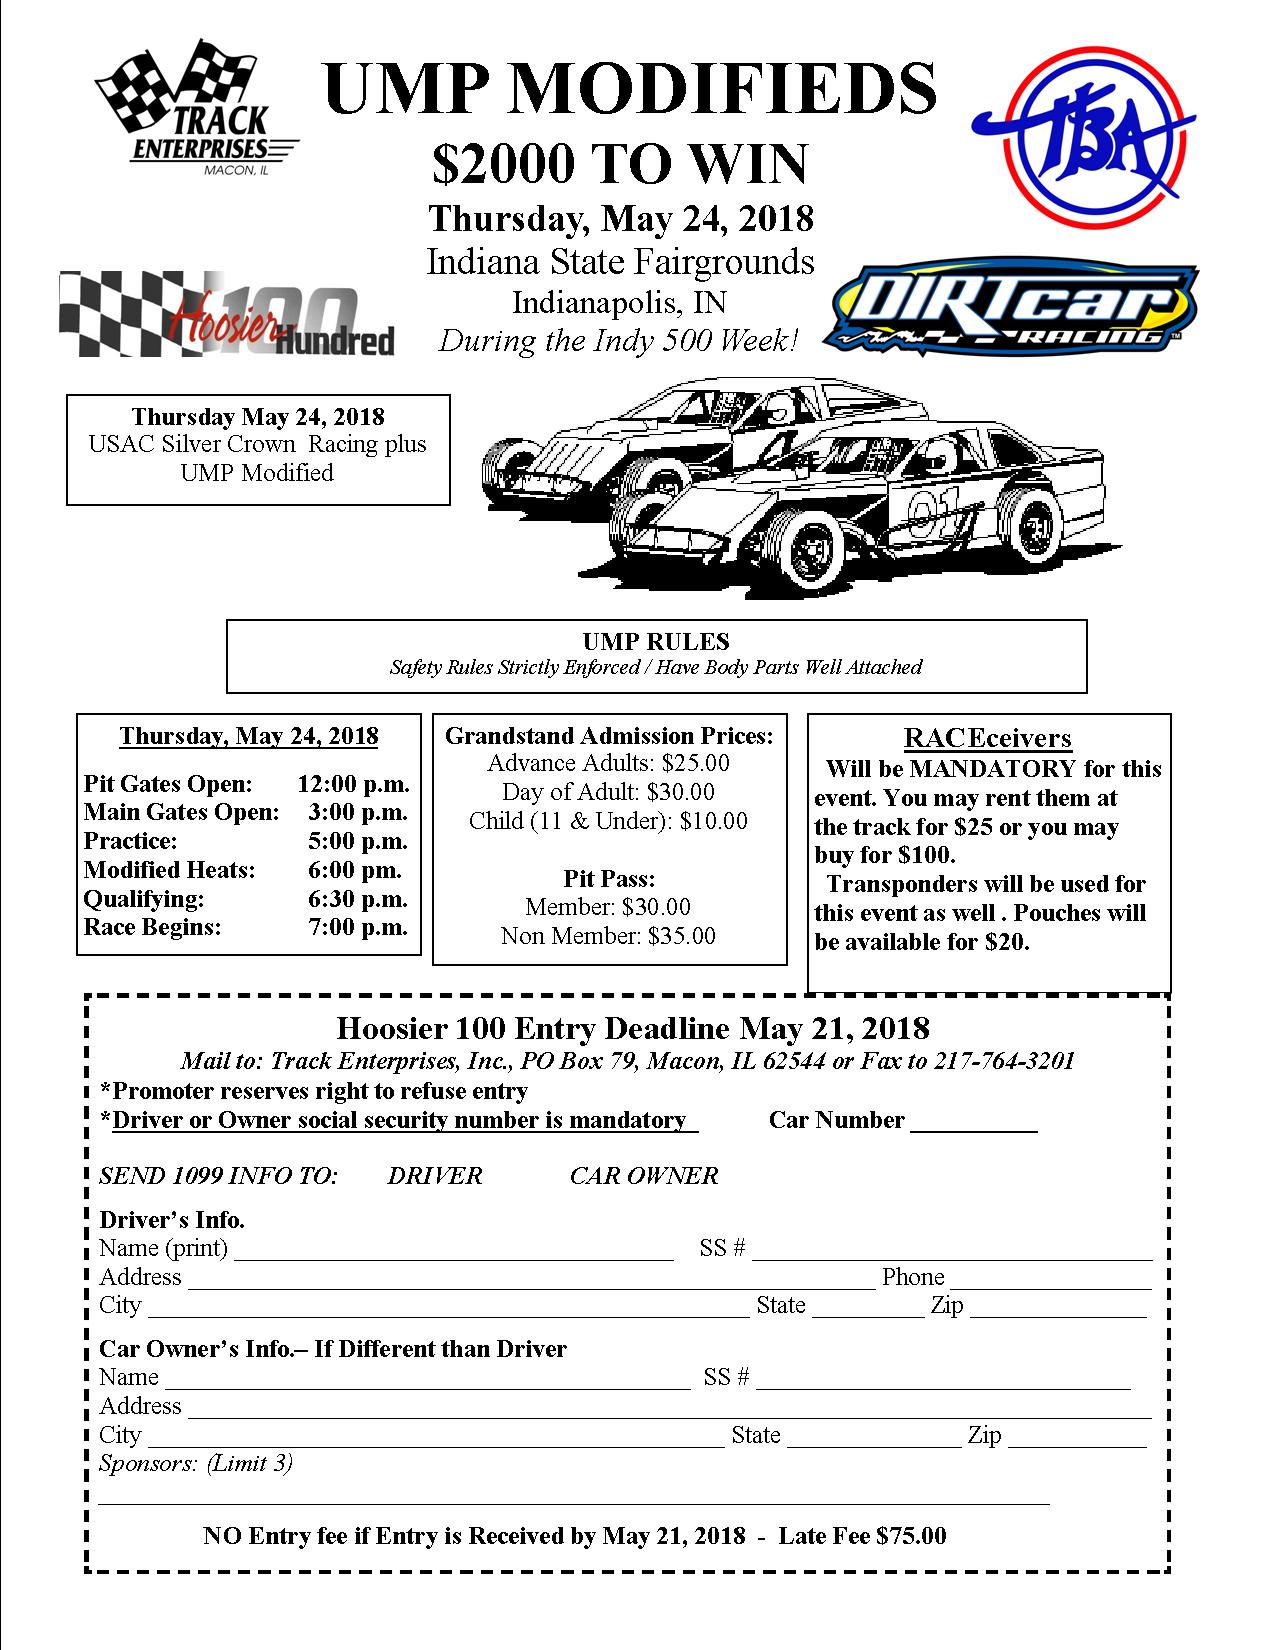 Hoosier 100 MOD Entry Form